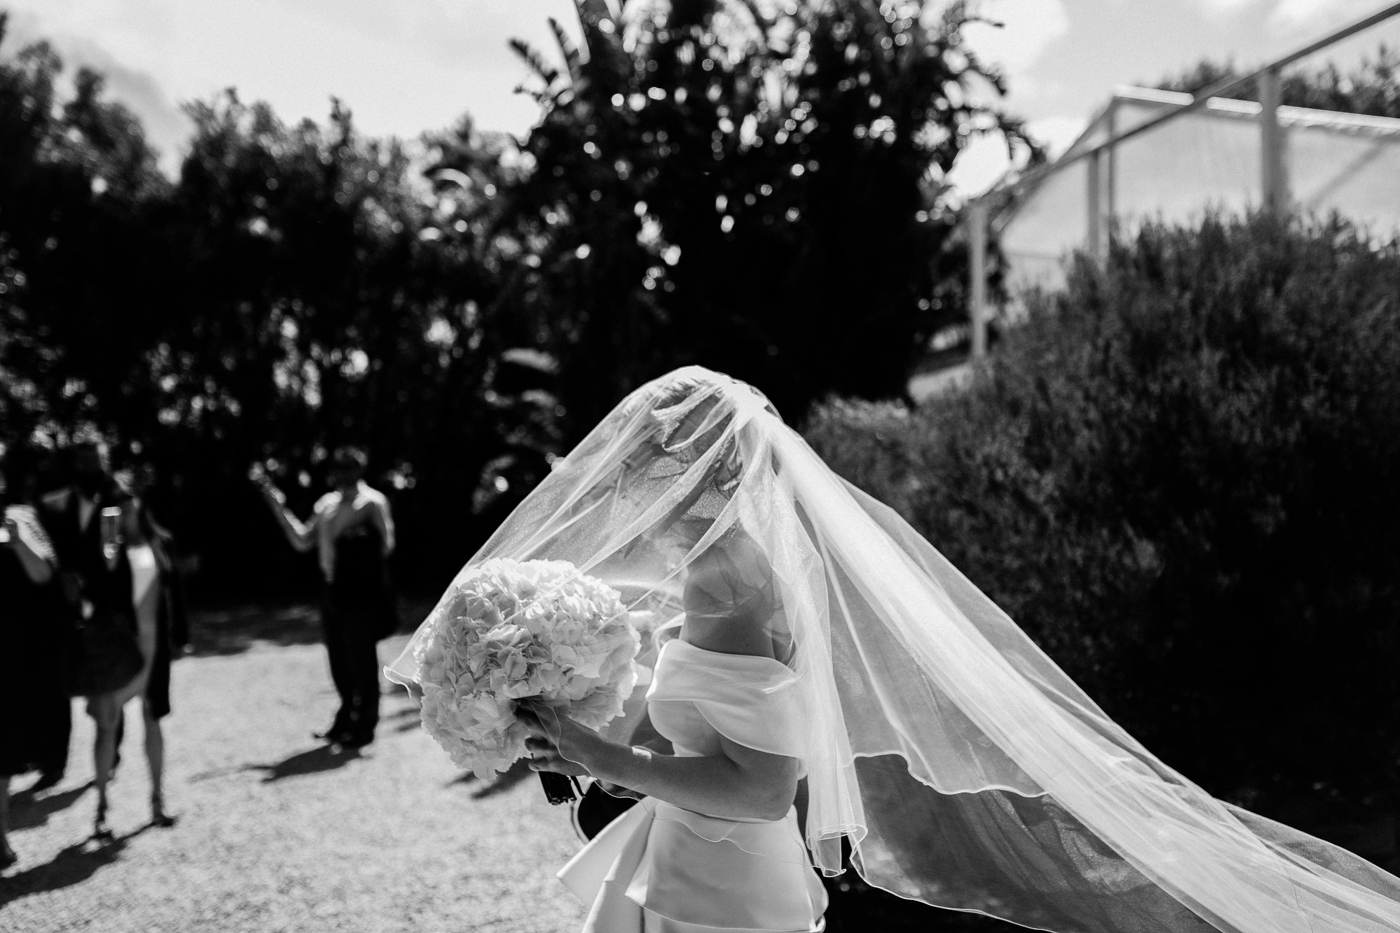 Bec & Brad - Waverley Estate Wedding - Natural Wedding Photographer in Adelaide - www.katherineschultzphotography.com 31